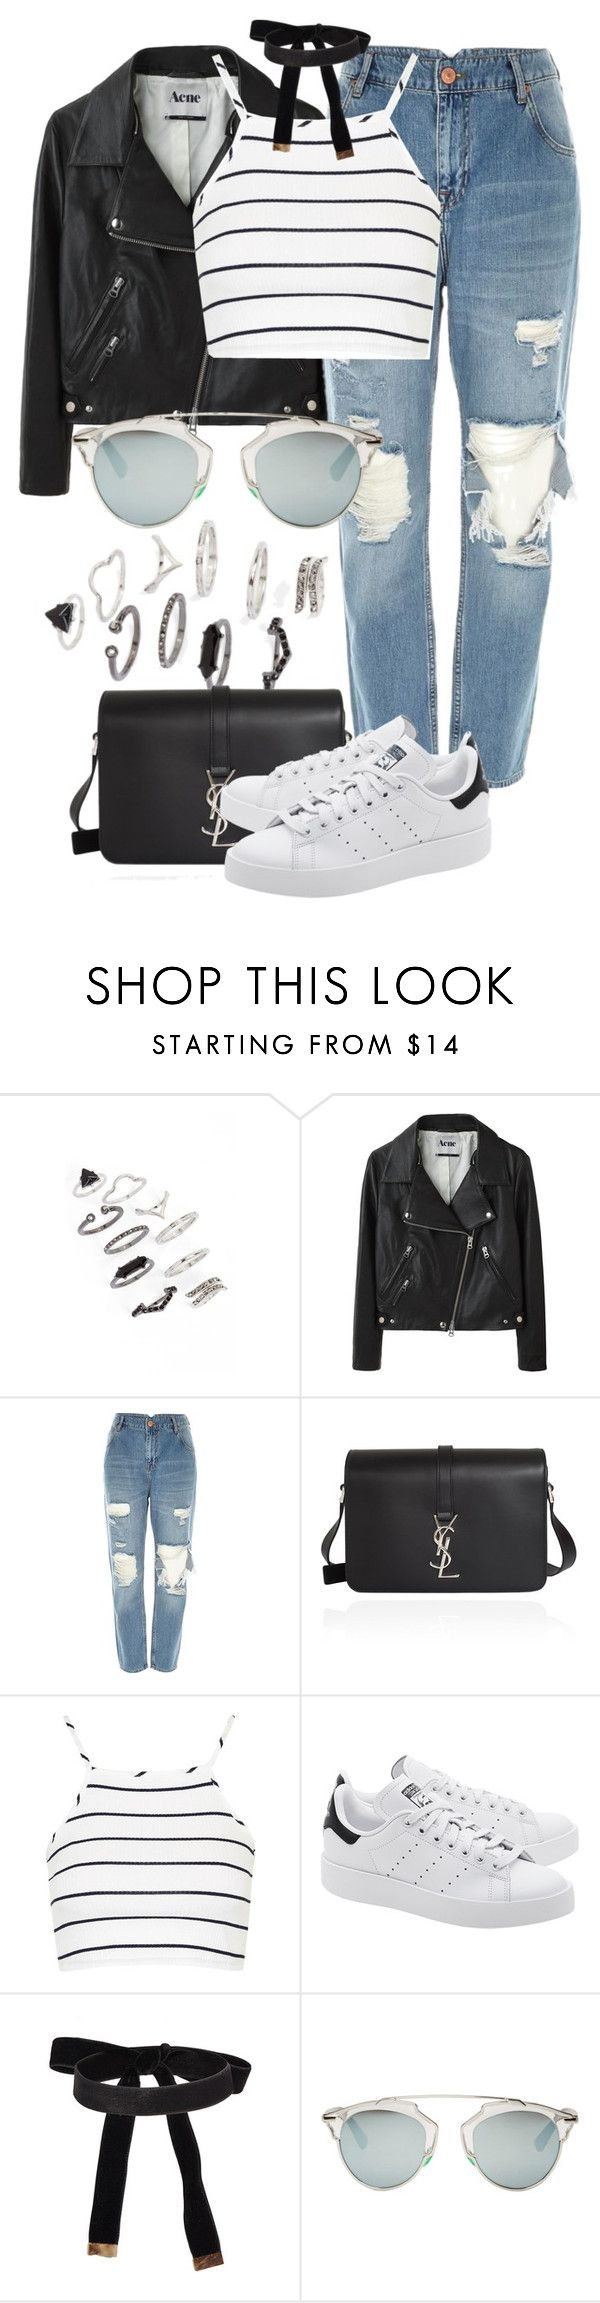 """Untitled #2349"" by annielizjung ❤ liked on Polyvore featuring Topshop, Acne Studios, River Island, Yves Saint Laurent, adidas Originals, Cybele and Christian Dior"